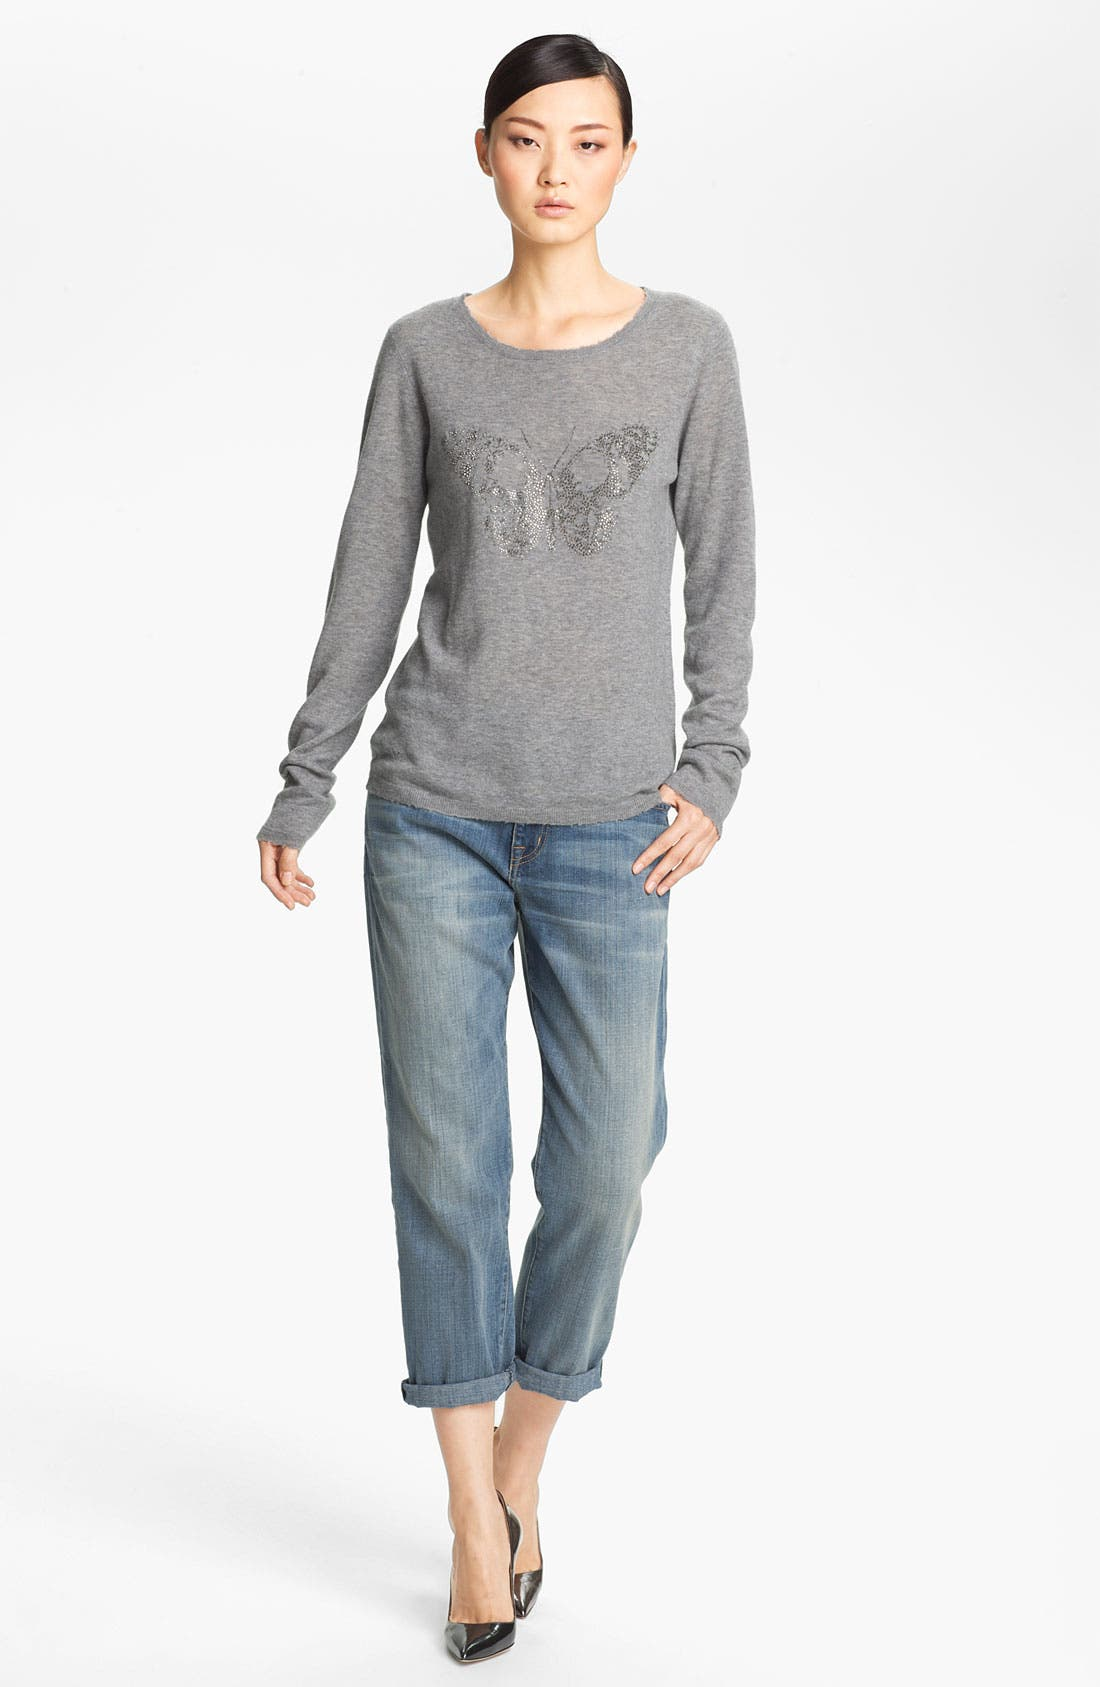 Main Image - Zadig & Voltaire Butterfly Print Cashmere Sweater